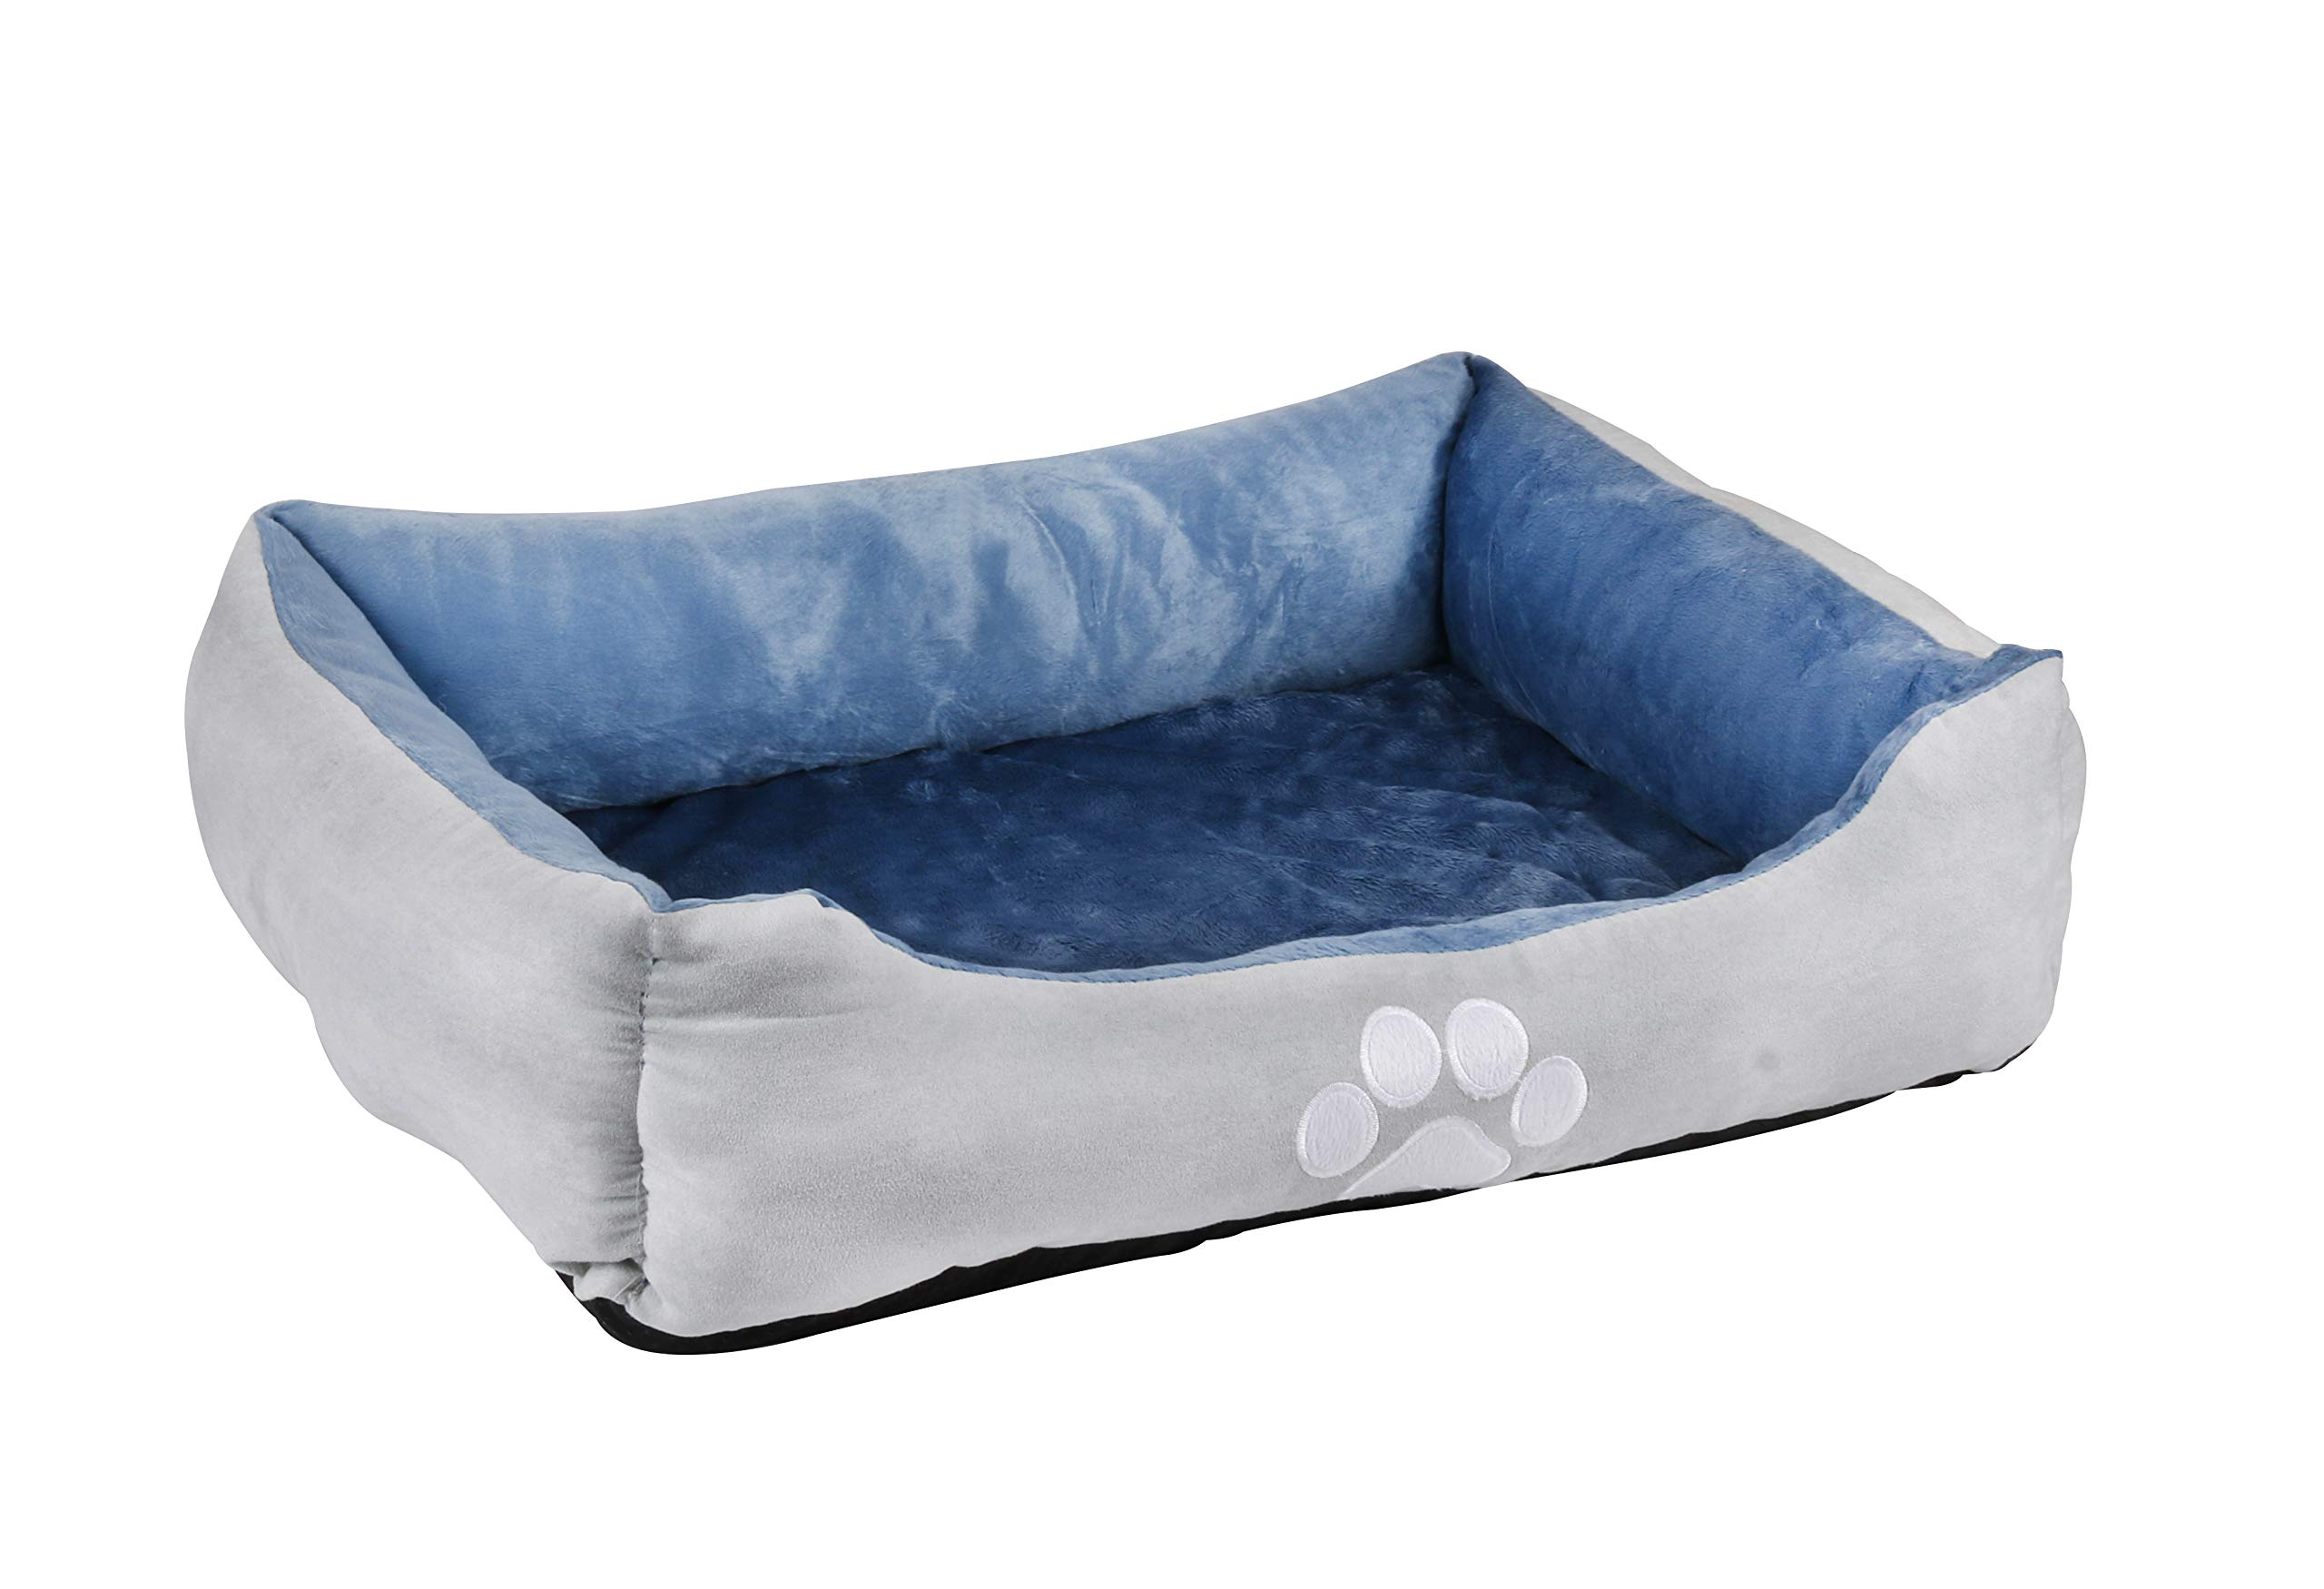 long rich Orthopedic Rectangle Bolster Pet Bed,Dog Bed, Medium 25x21 inches Blue, by Happycare Textiles by long rich